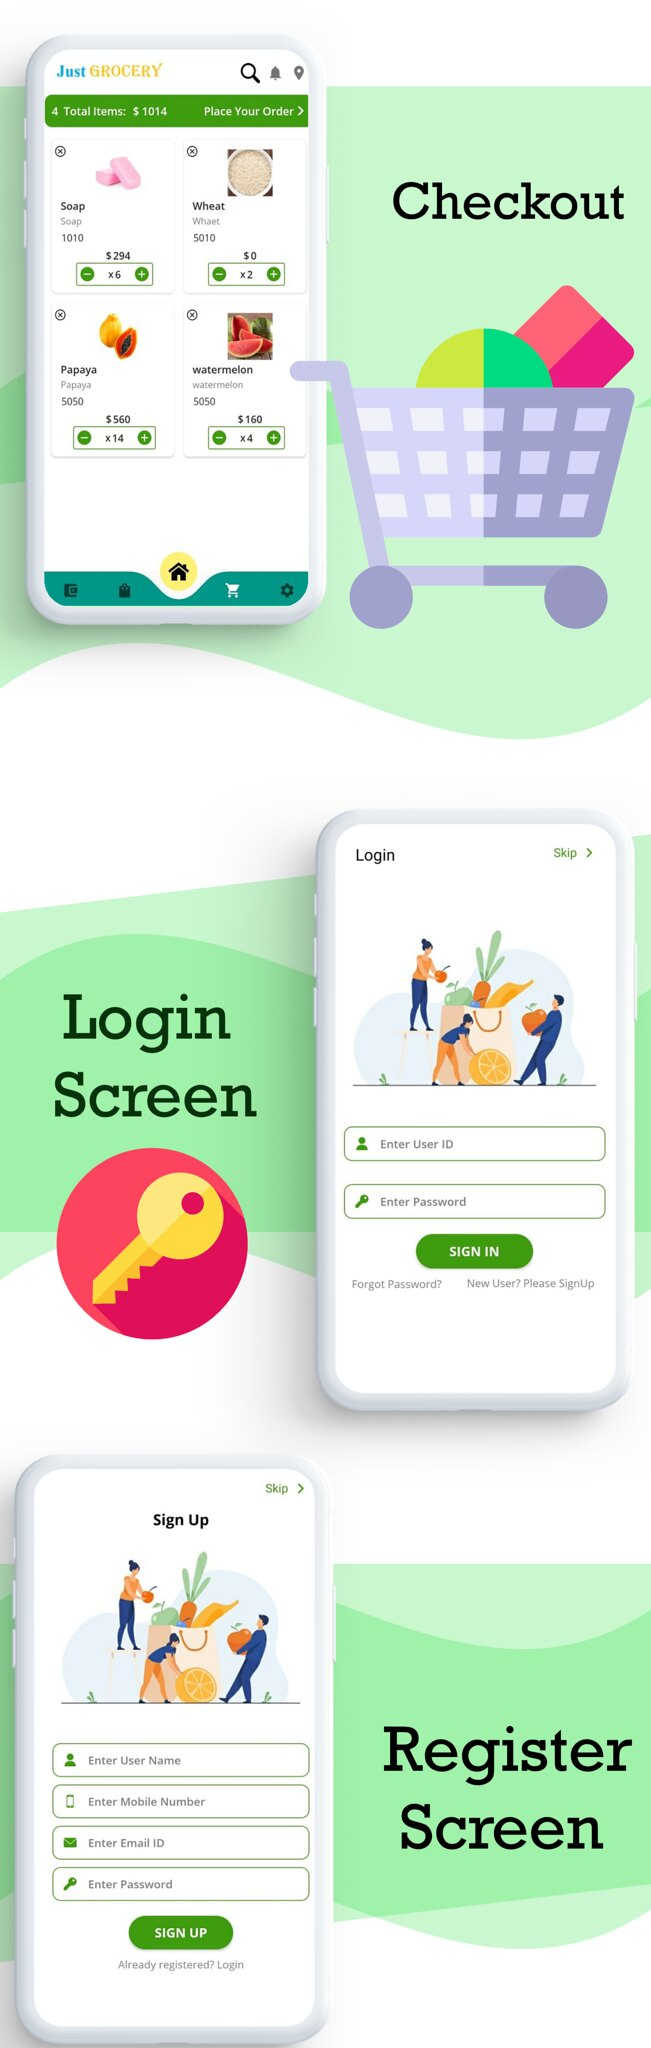 Just Grocery App | Grocery At Home | Paypal & Razorpay Integrated | Delivery & Customer App - 4